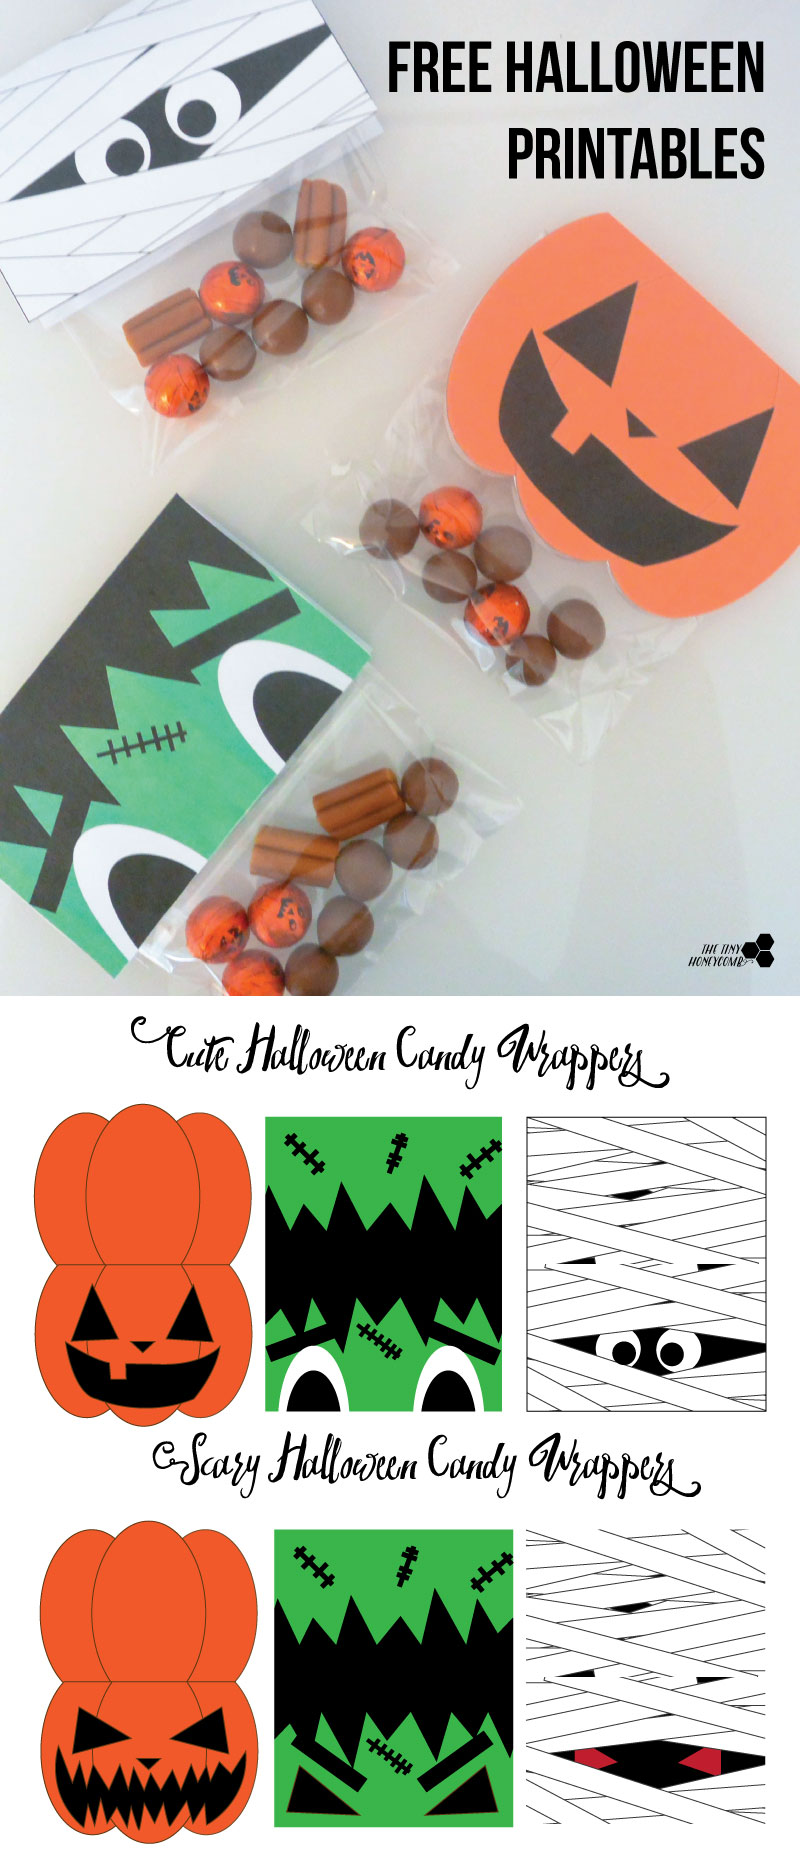 Free Halloween Candy Wrappers Printable. The Tiny Honeycomb blog